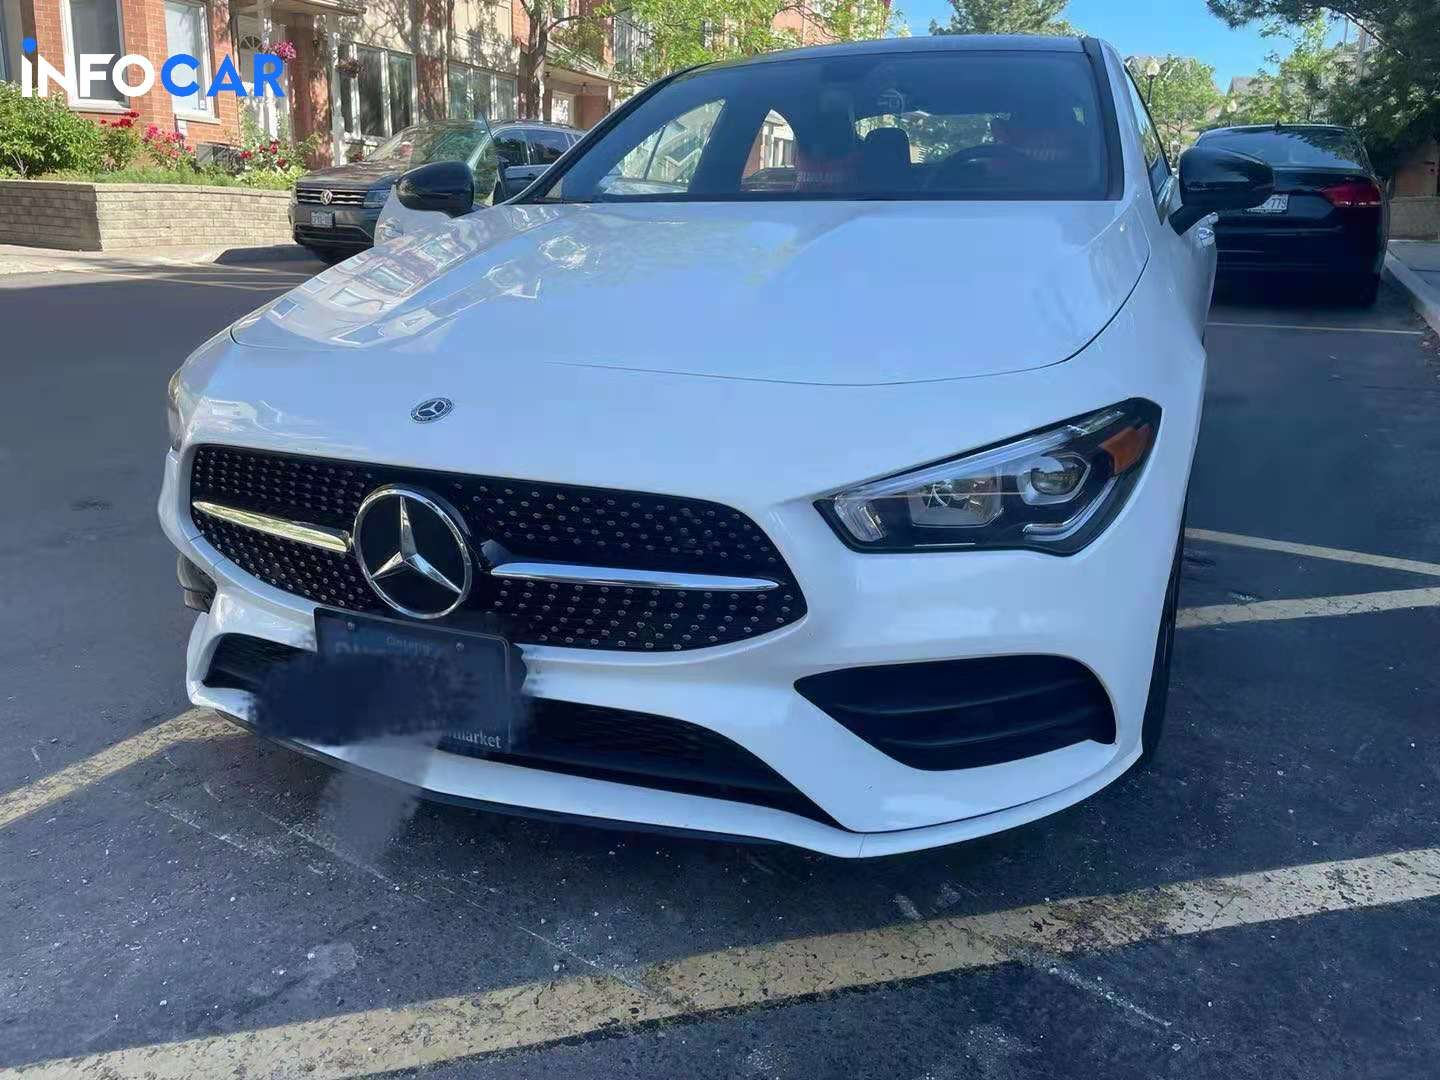 2020 Mercedes-Benz CLA-Class cla - INFOCAR - Toronto's Most Comprehensive New and Used Auto Trading Platform